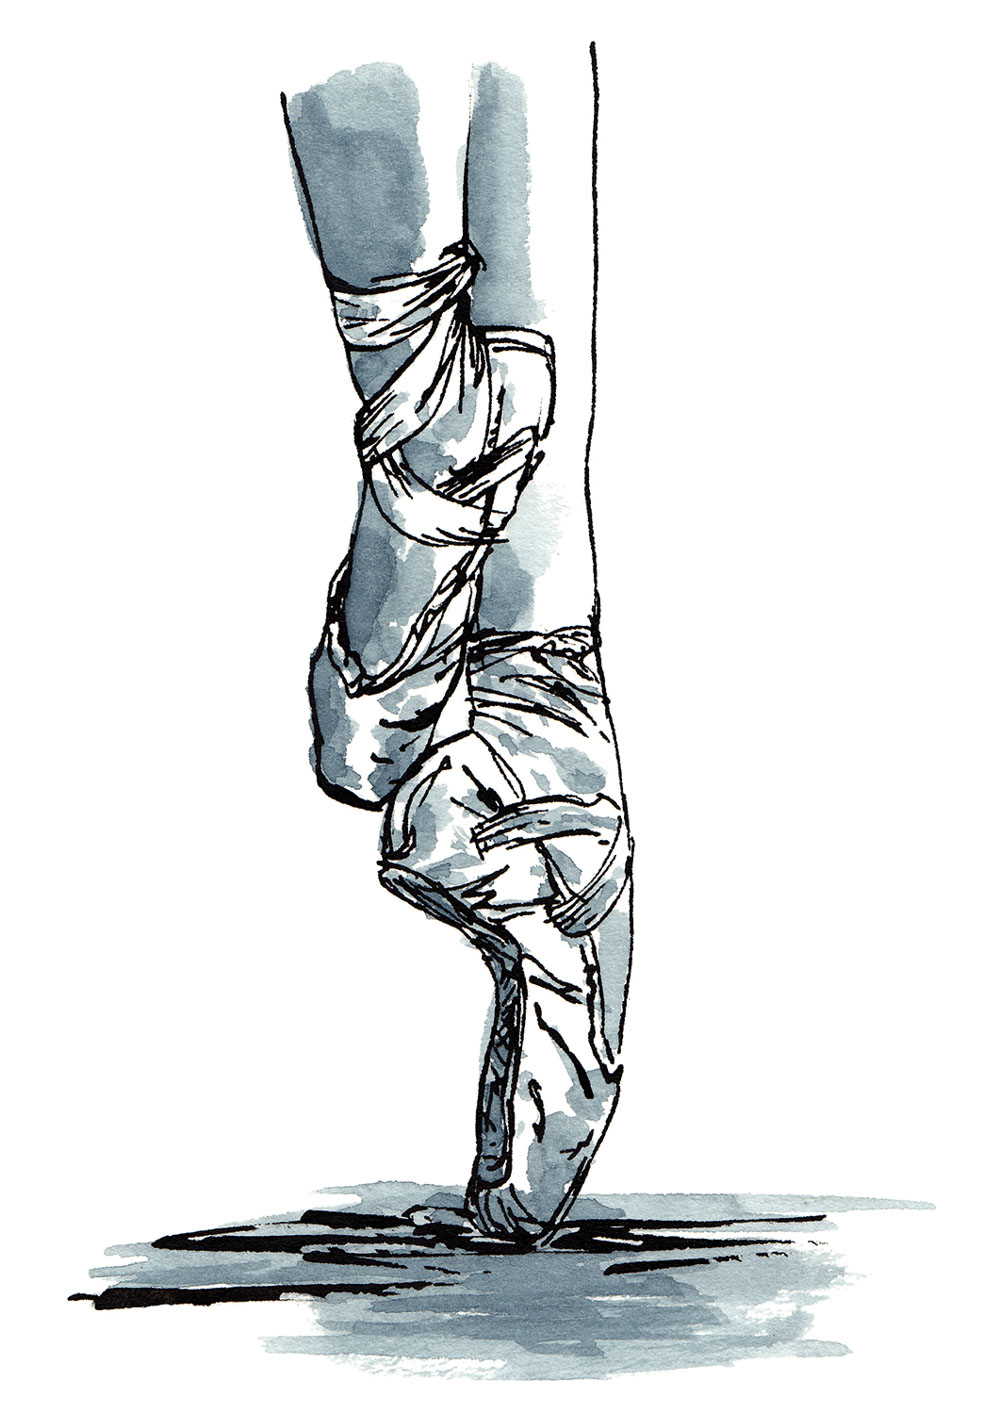 On Pointe 6